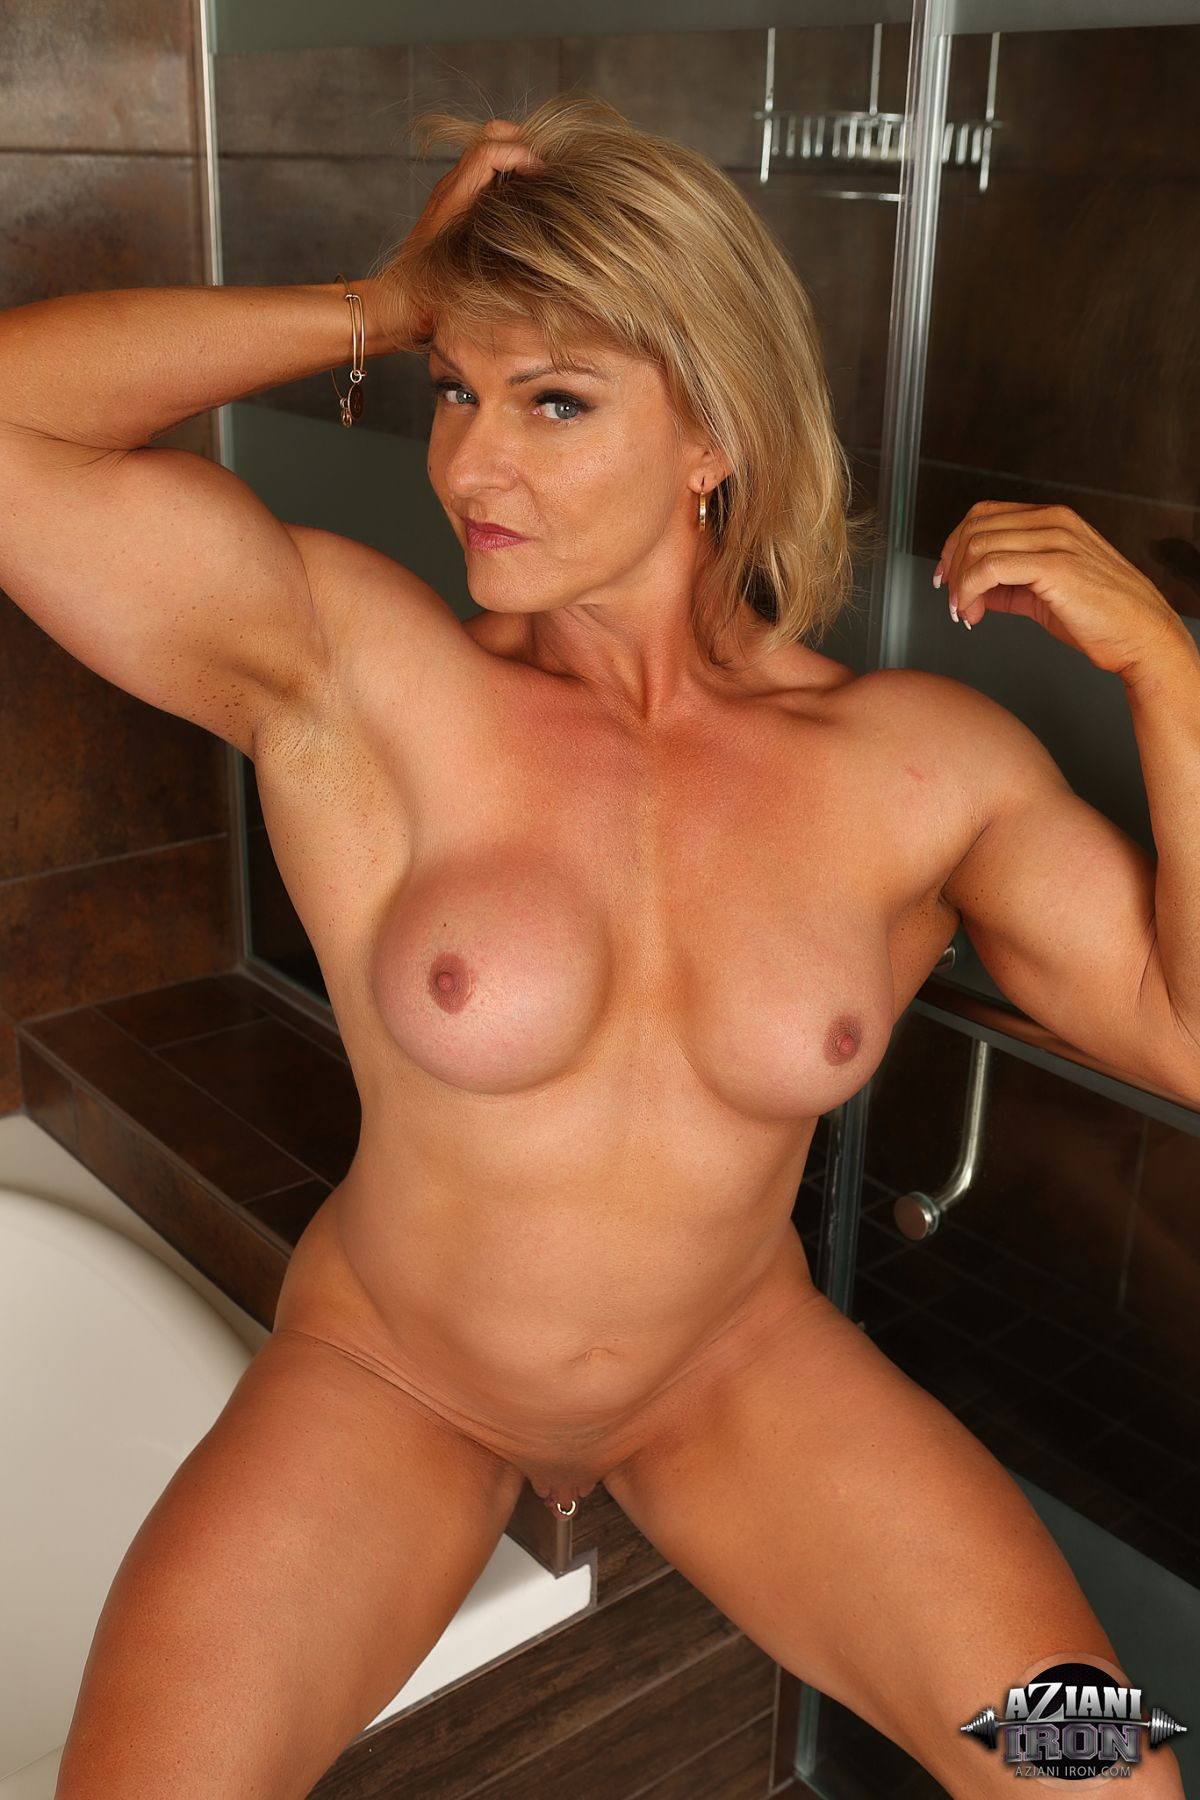 from Alfred machine sex female bodybuilders porn